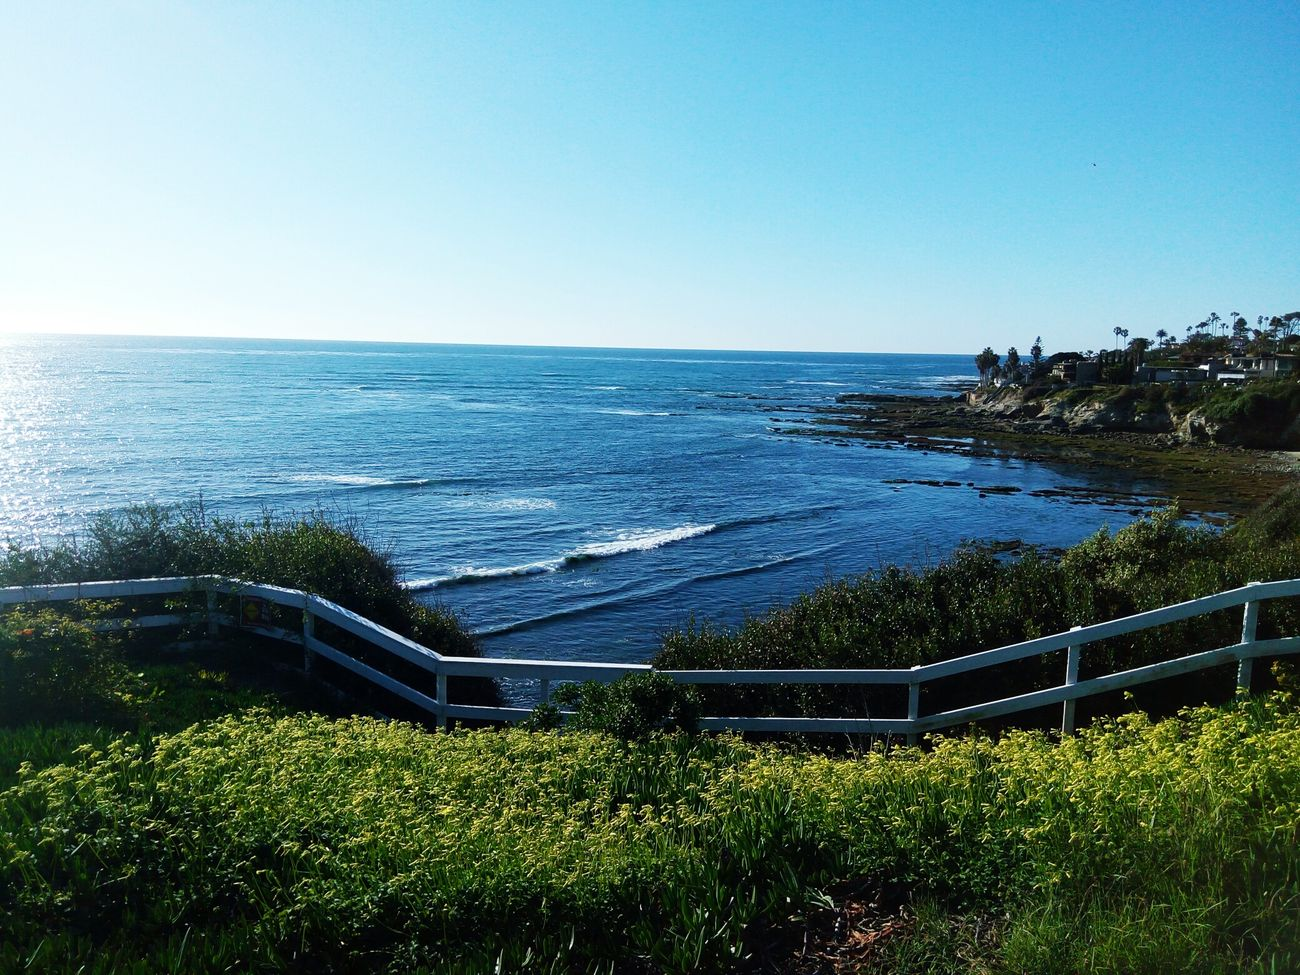 Clear Sky Sea Sport Nature Outdoors Scenics Beauty In Nature Sky Day Tranquility Water Horizon Over Water Tranquil Scene No People Tree Soccer Field Stadium Getty Images Pixelgirl Clear Sky Ocean, Water, Beach, Birdrock TRENDING  TRENDING  Sea Lion Grass